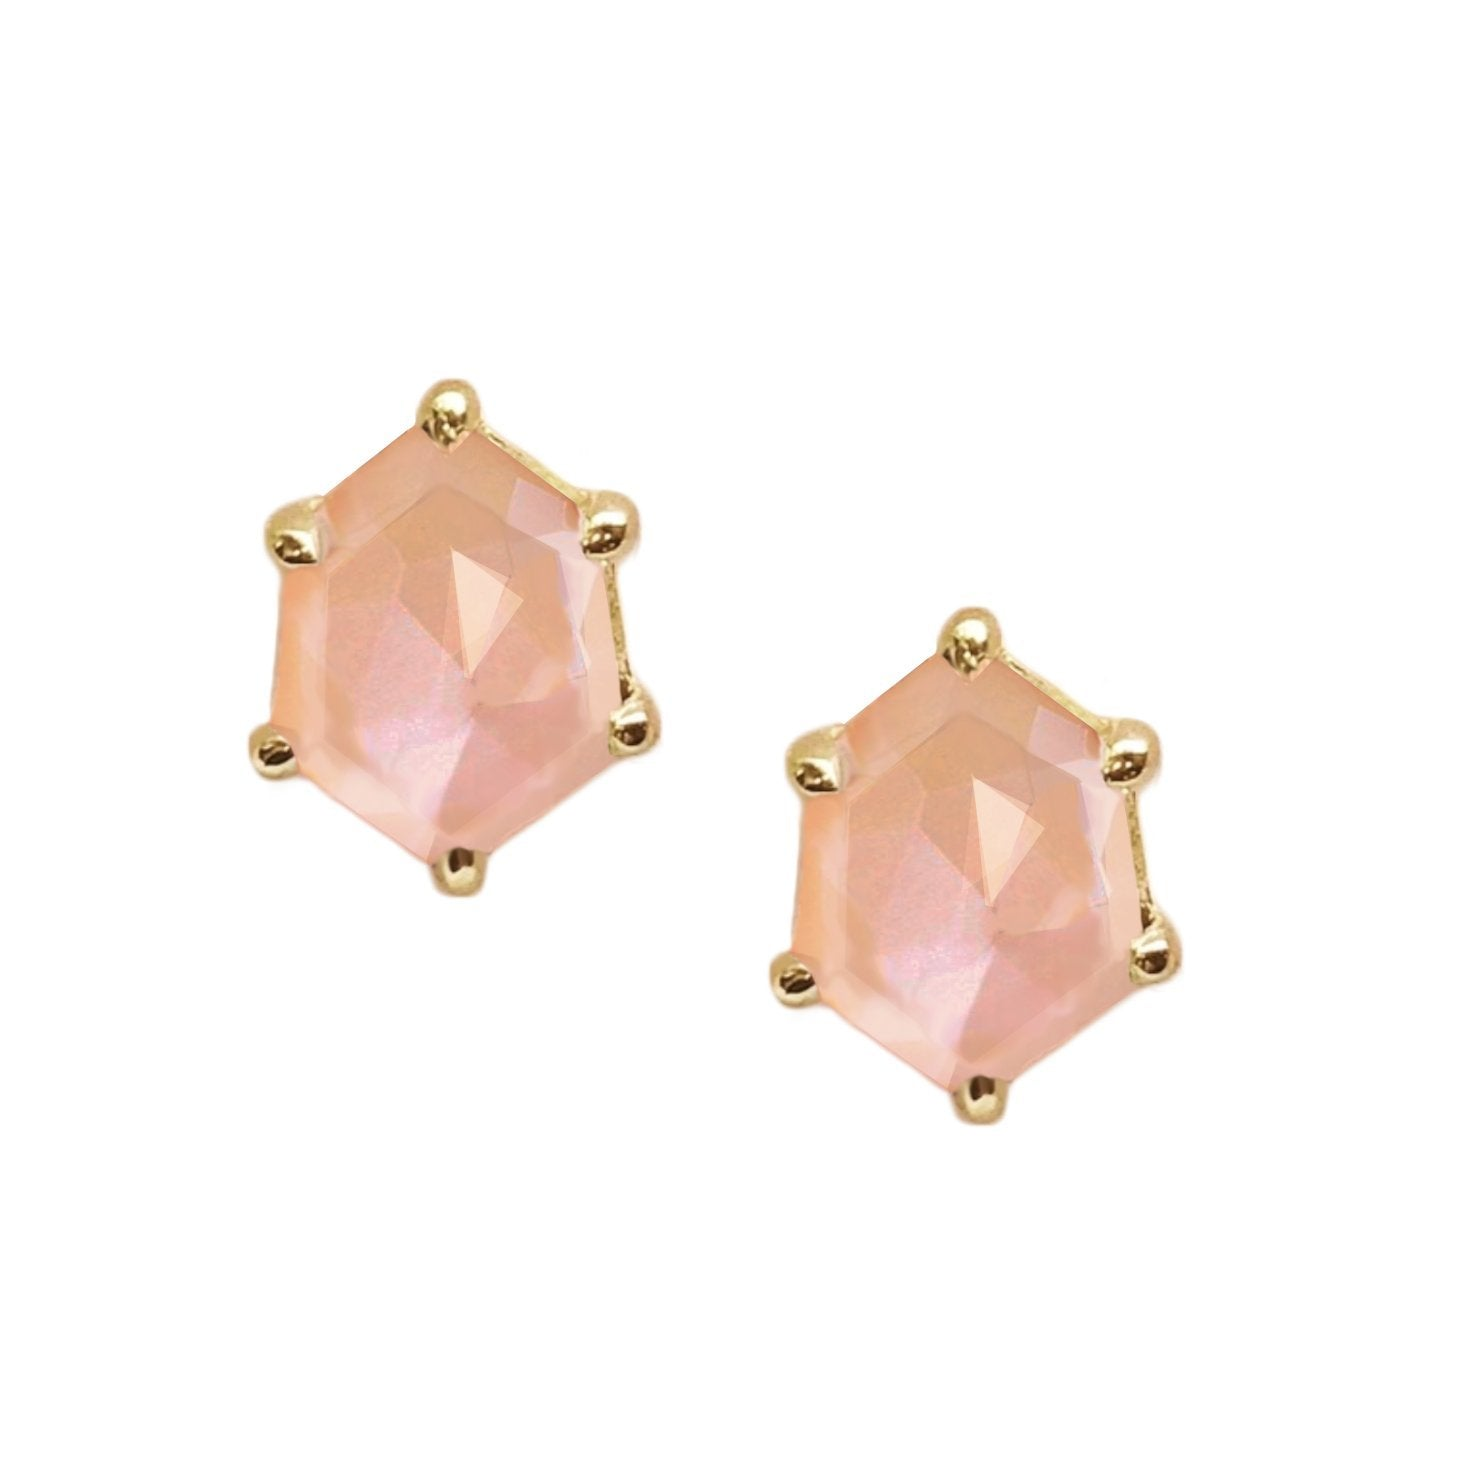 MINI HONOUR SHIELD STUD EARRINGS - PEACH MOONSTONE & GOLD - SO PRETTY CARA COTTER